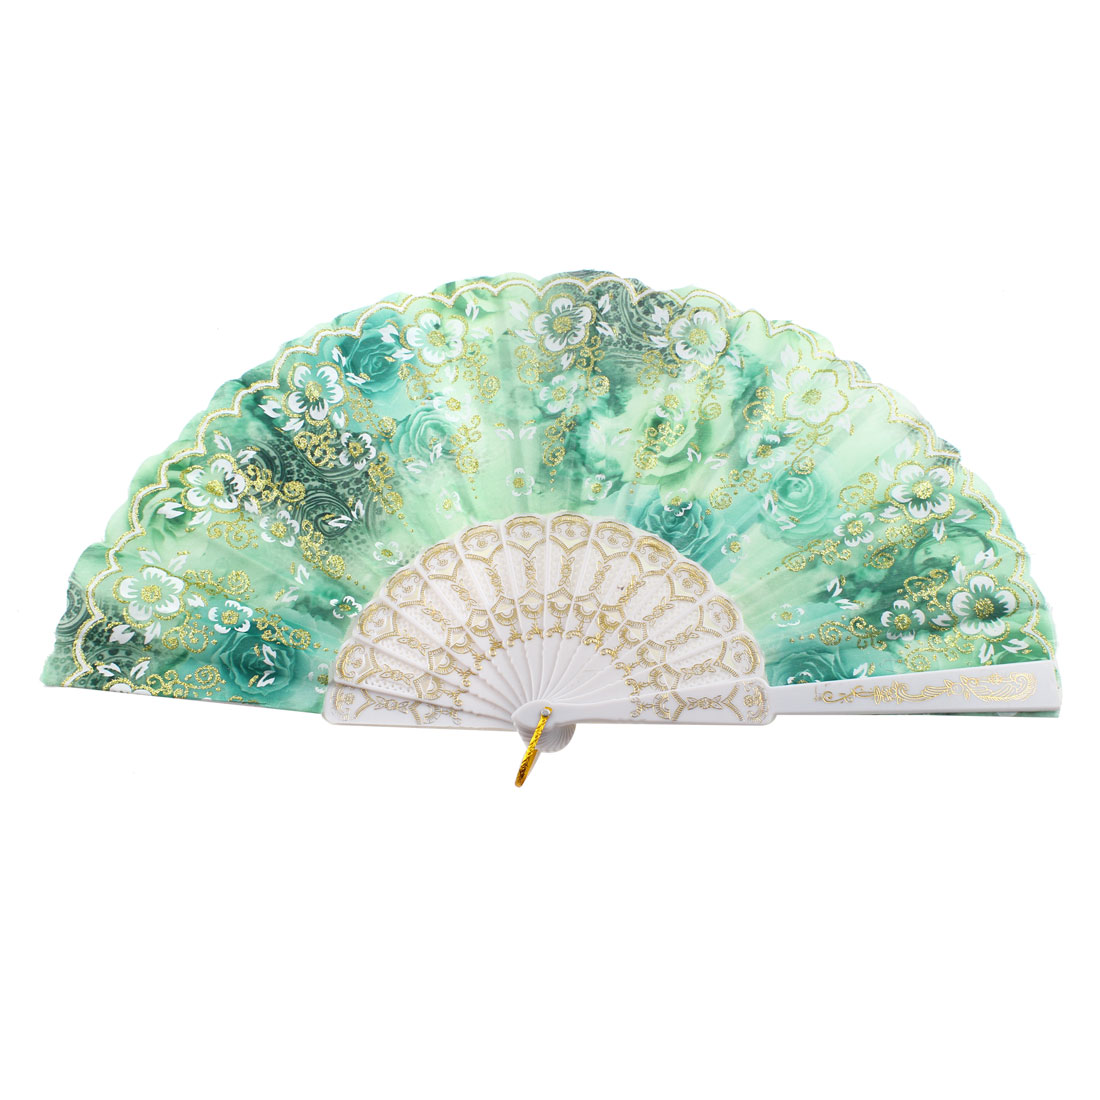 Glittery Powder Decor Flower Printed Folded Dancing Hand Fan Green